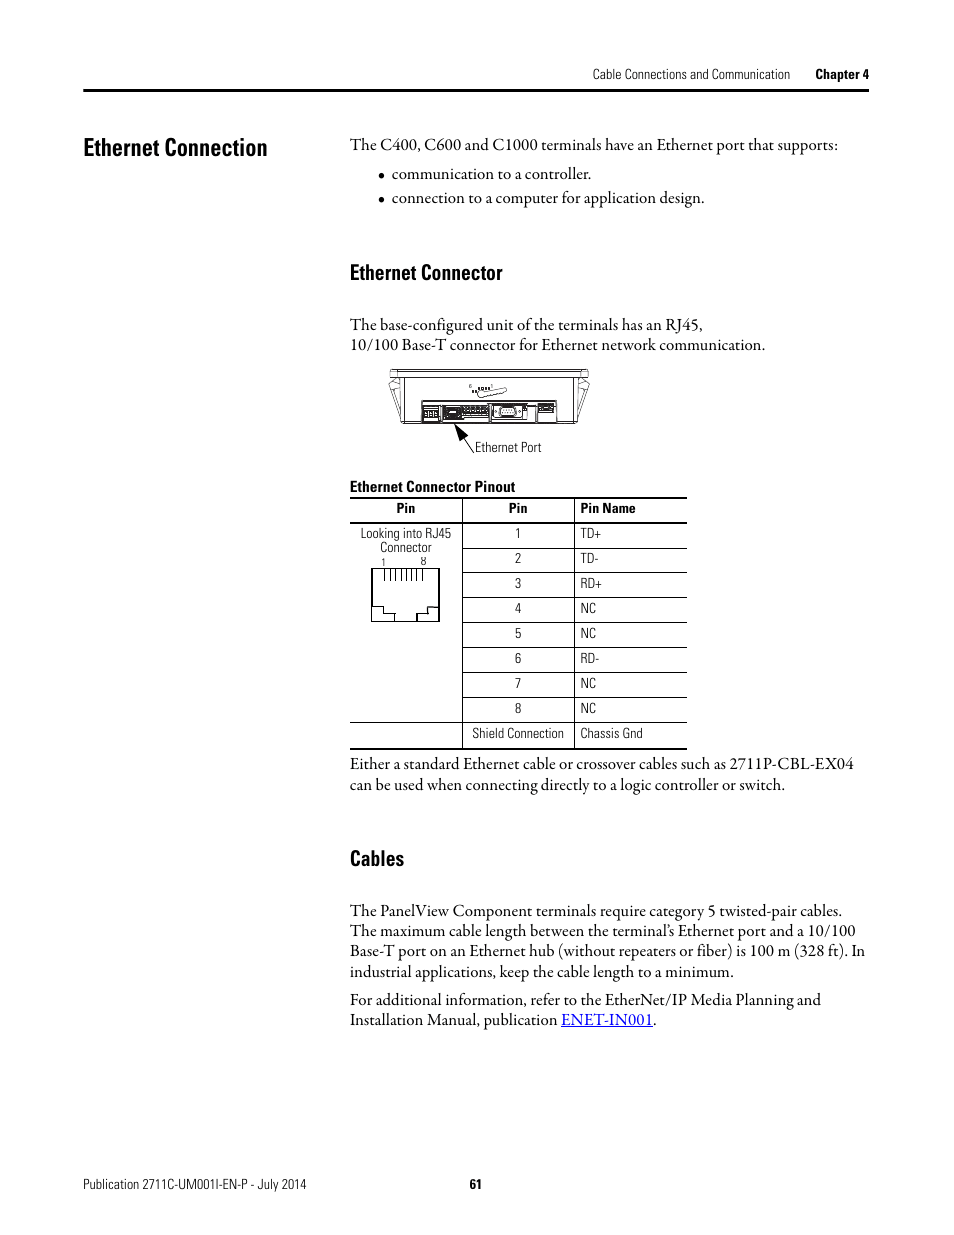 medium resolution of ethernet connection ethernet connector cables rockwell automation 2711c xxxx panelview component hmi terminals user manual page 61 146